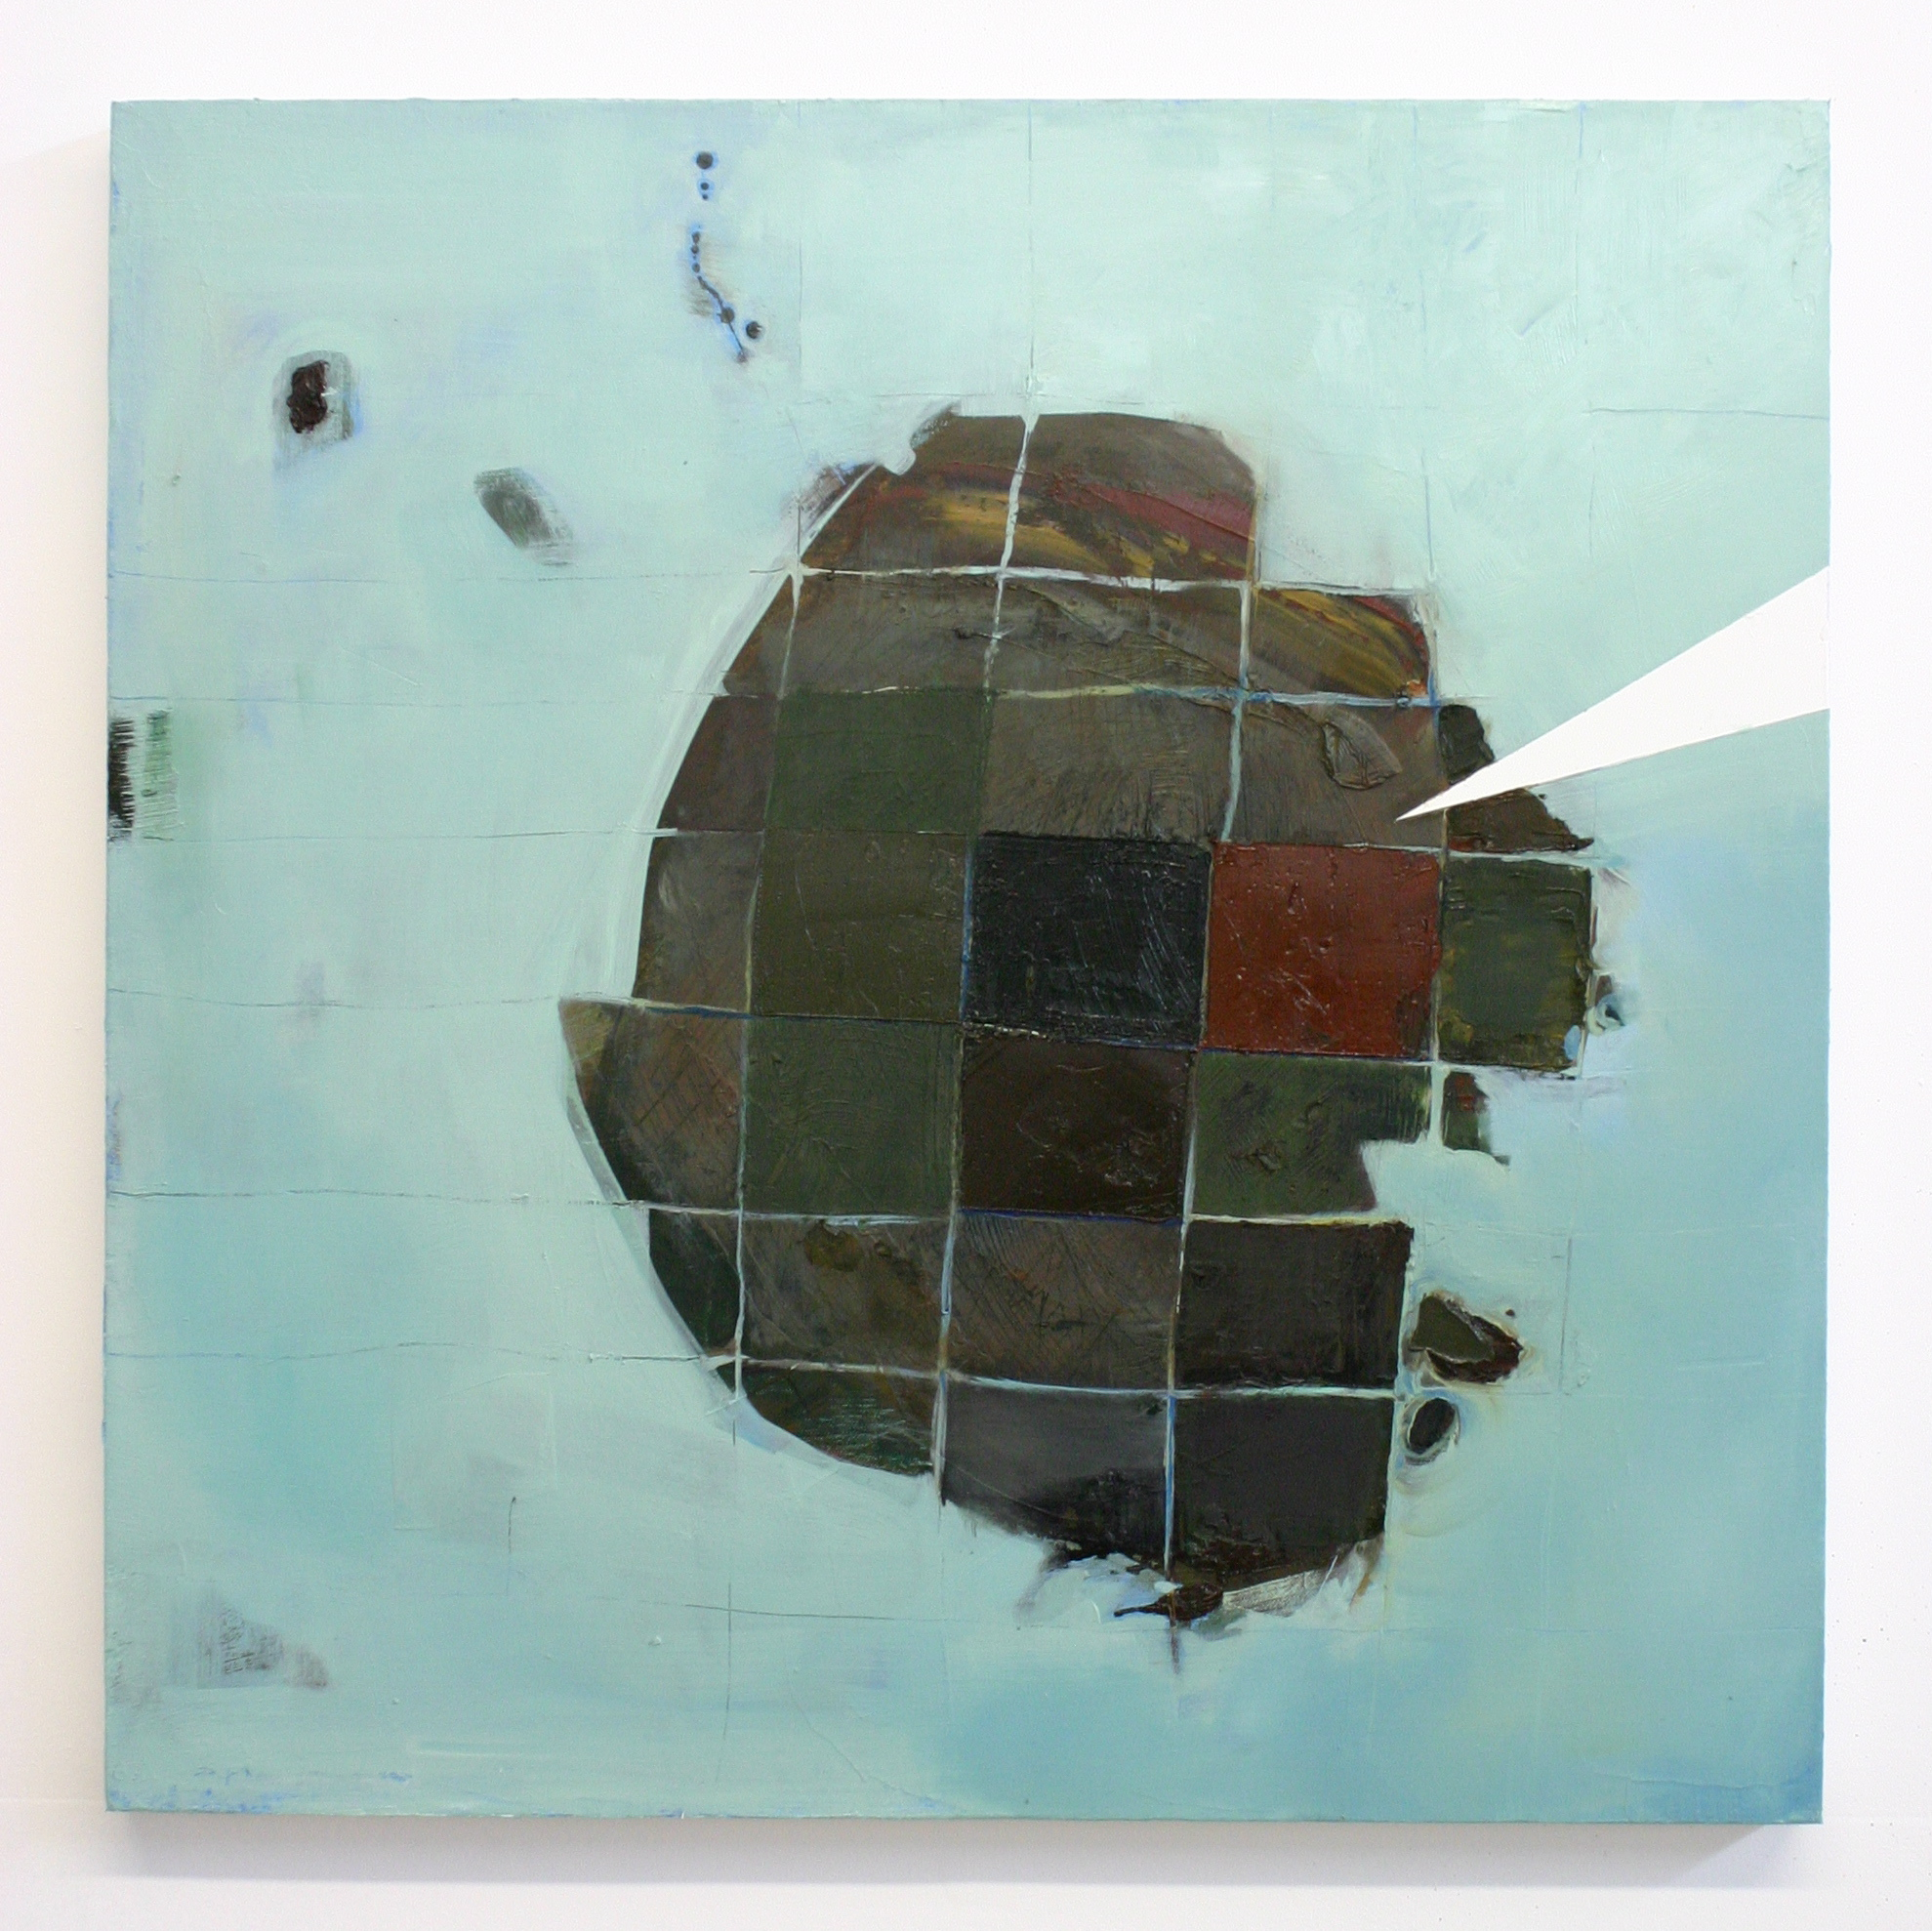 Archetype, 2012, oil on canvas, 24 x 24 inches